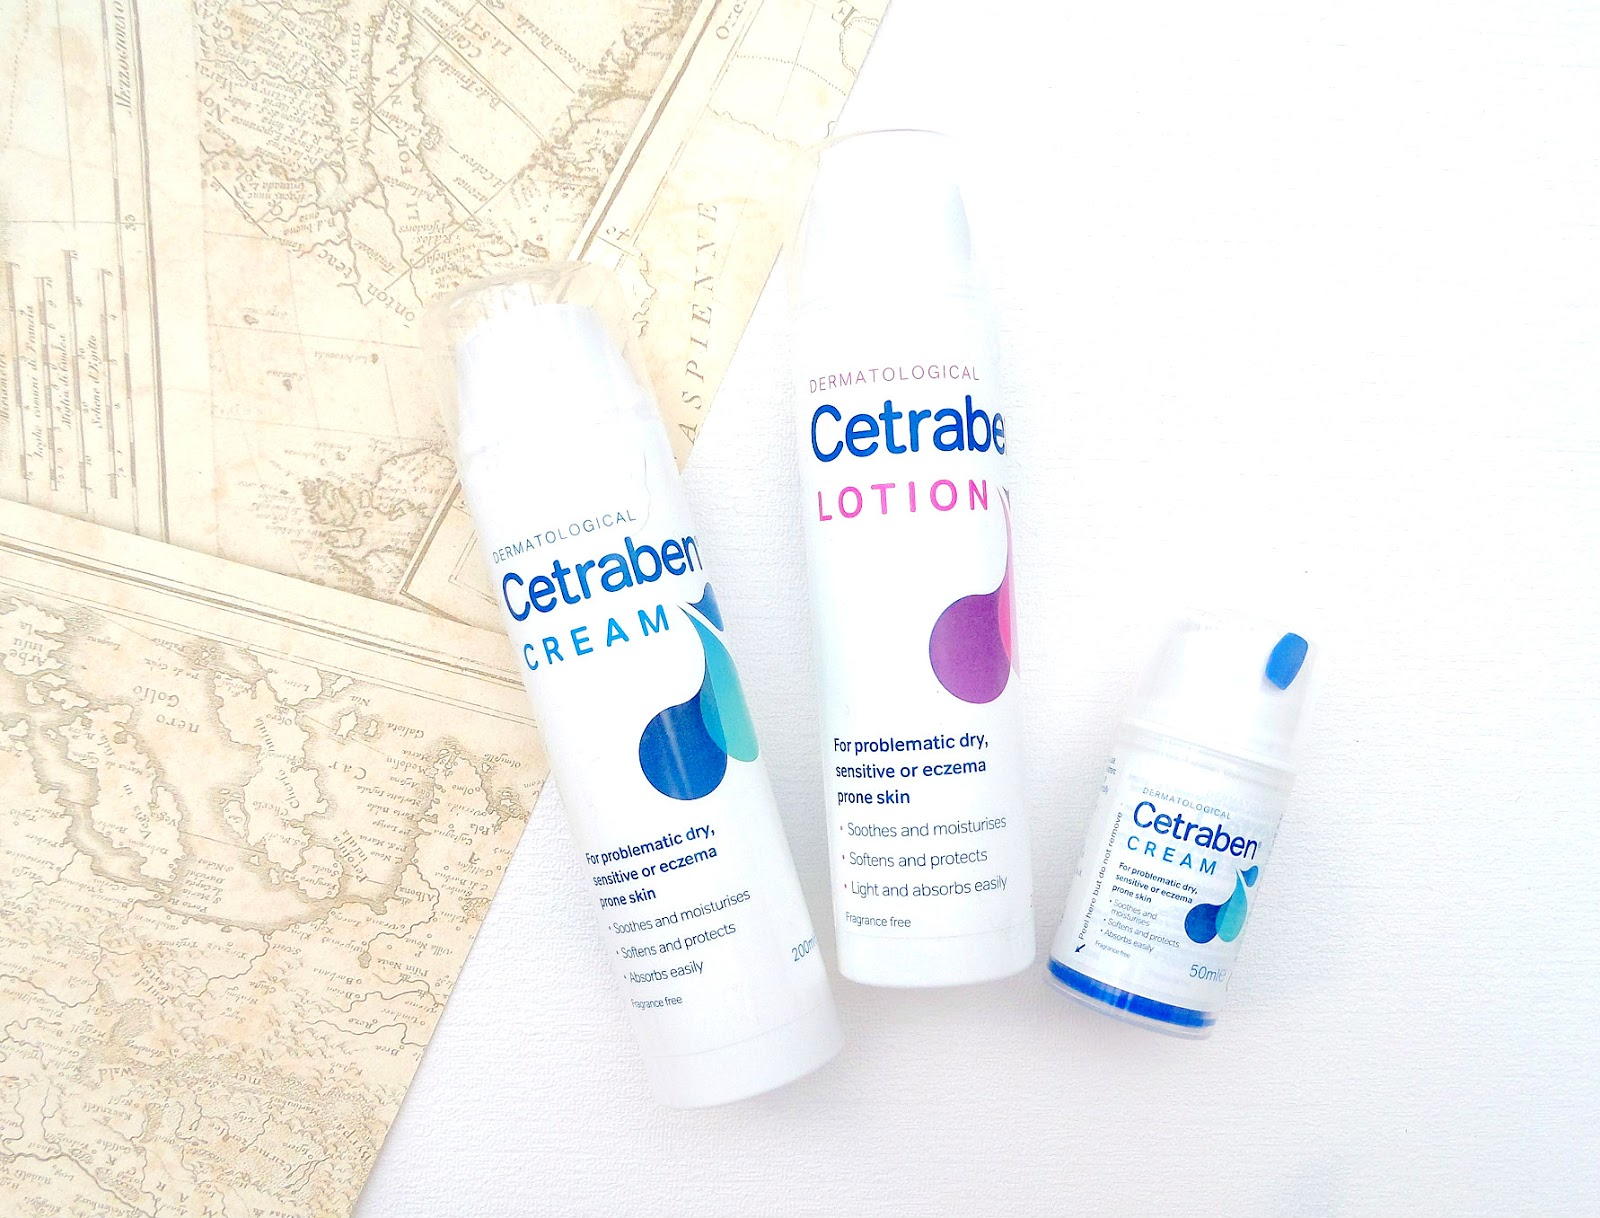 Cetraben Products the lotion and cream for eczema prone skin